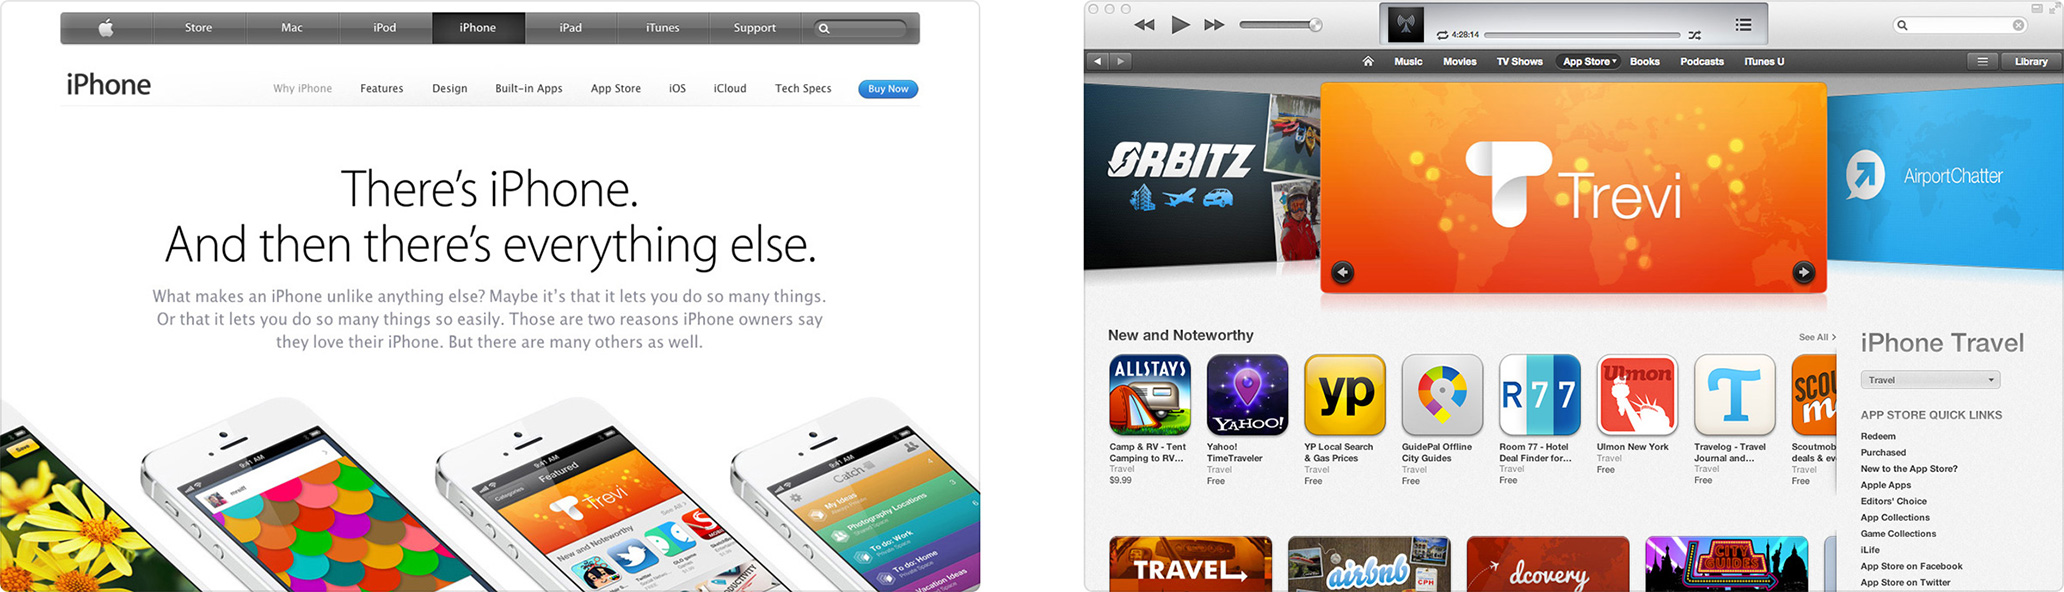 Trevi featured by Apple